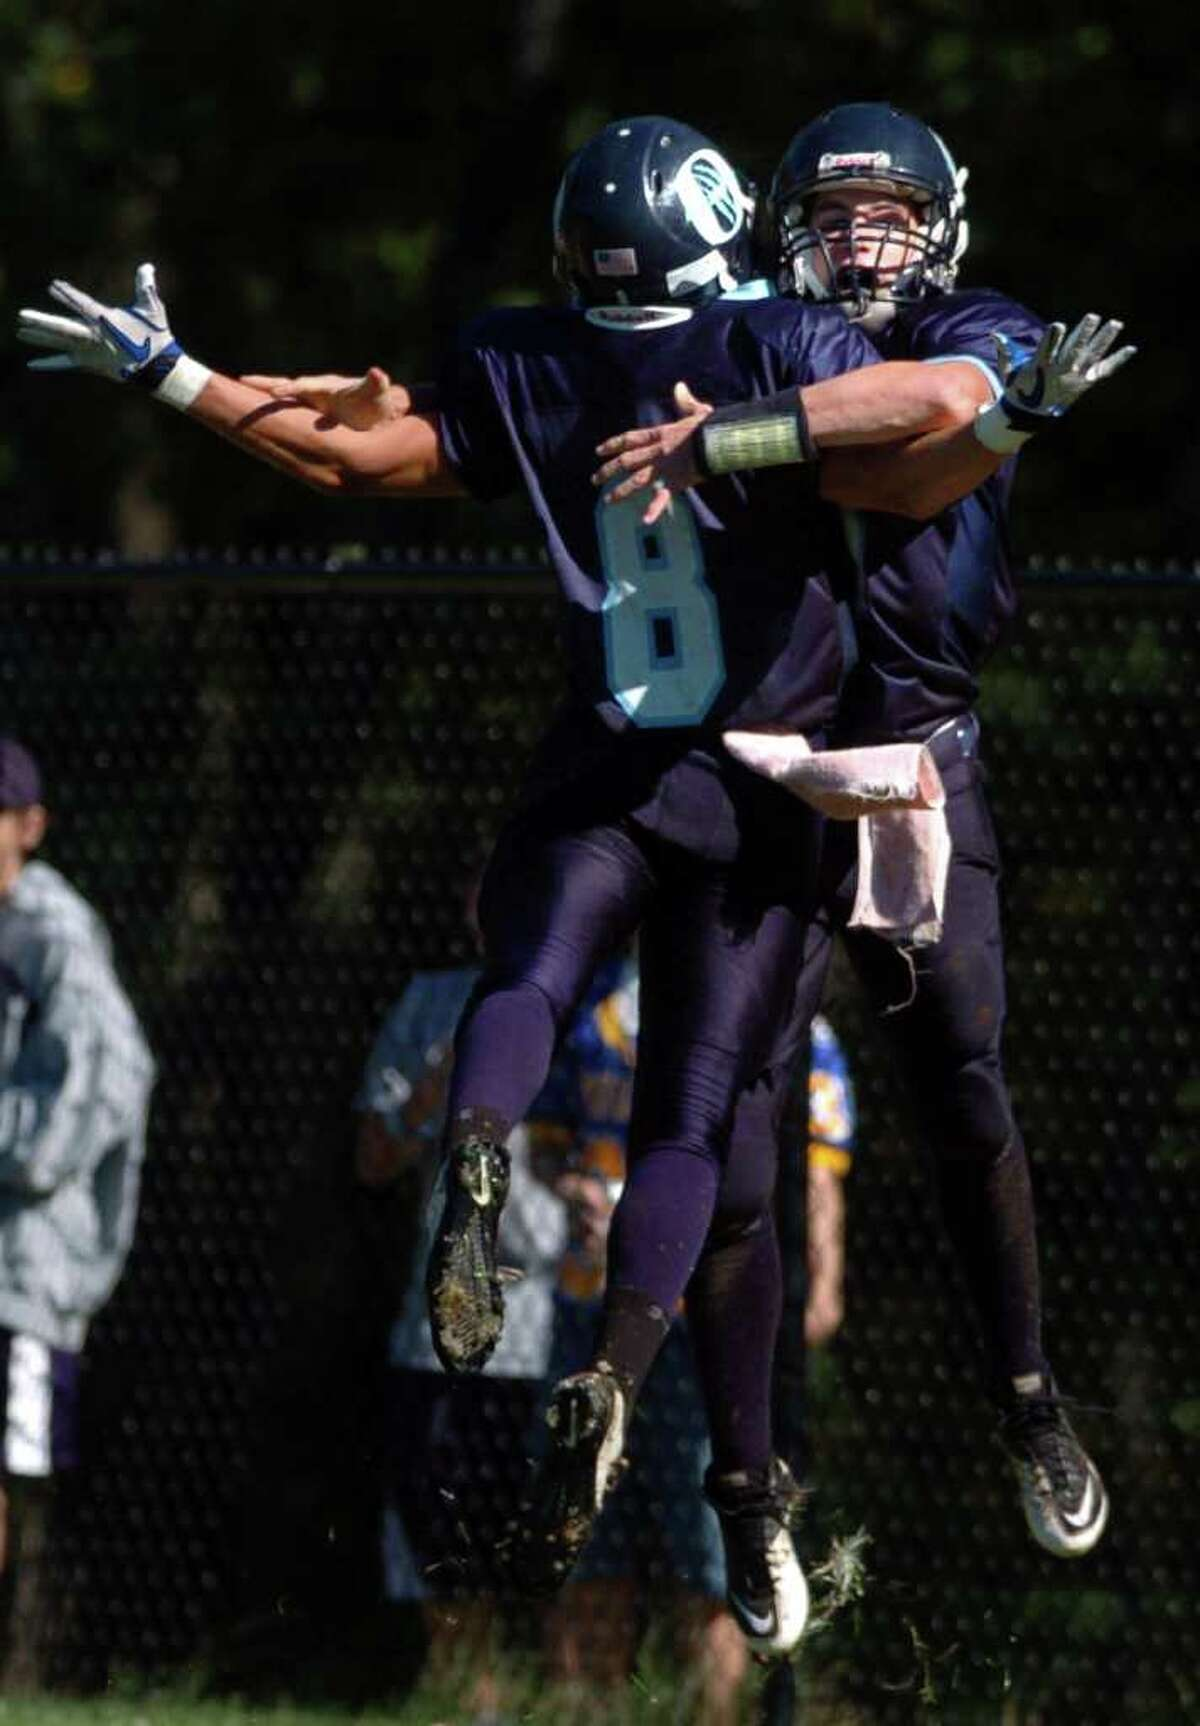 Oxford's Alex Miller and Justin Lasto (8) celebrate a touchdown during their game against Stratford Saturday Oct. 2, 2010 at Oxford High School.